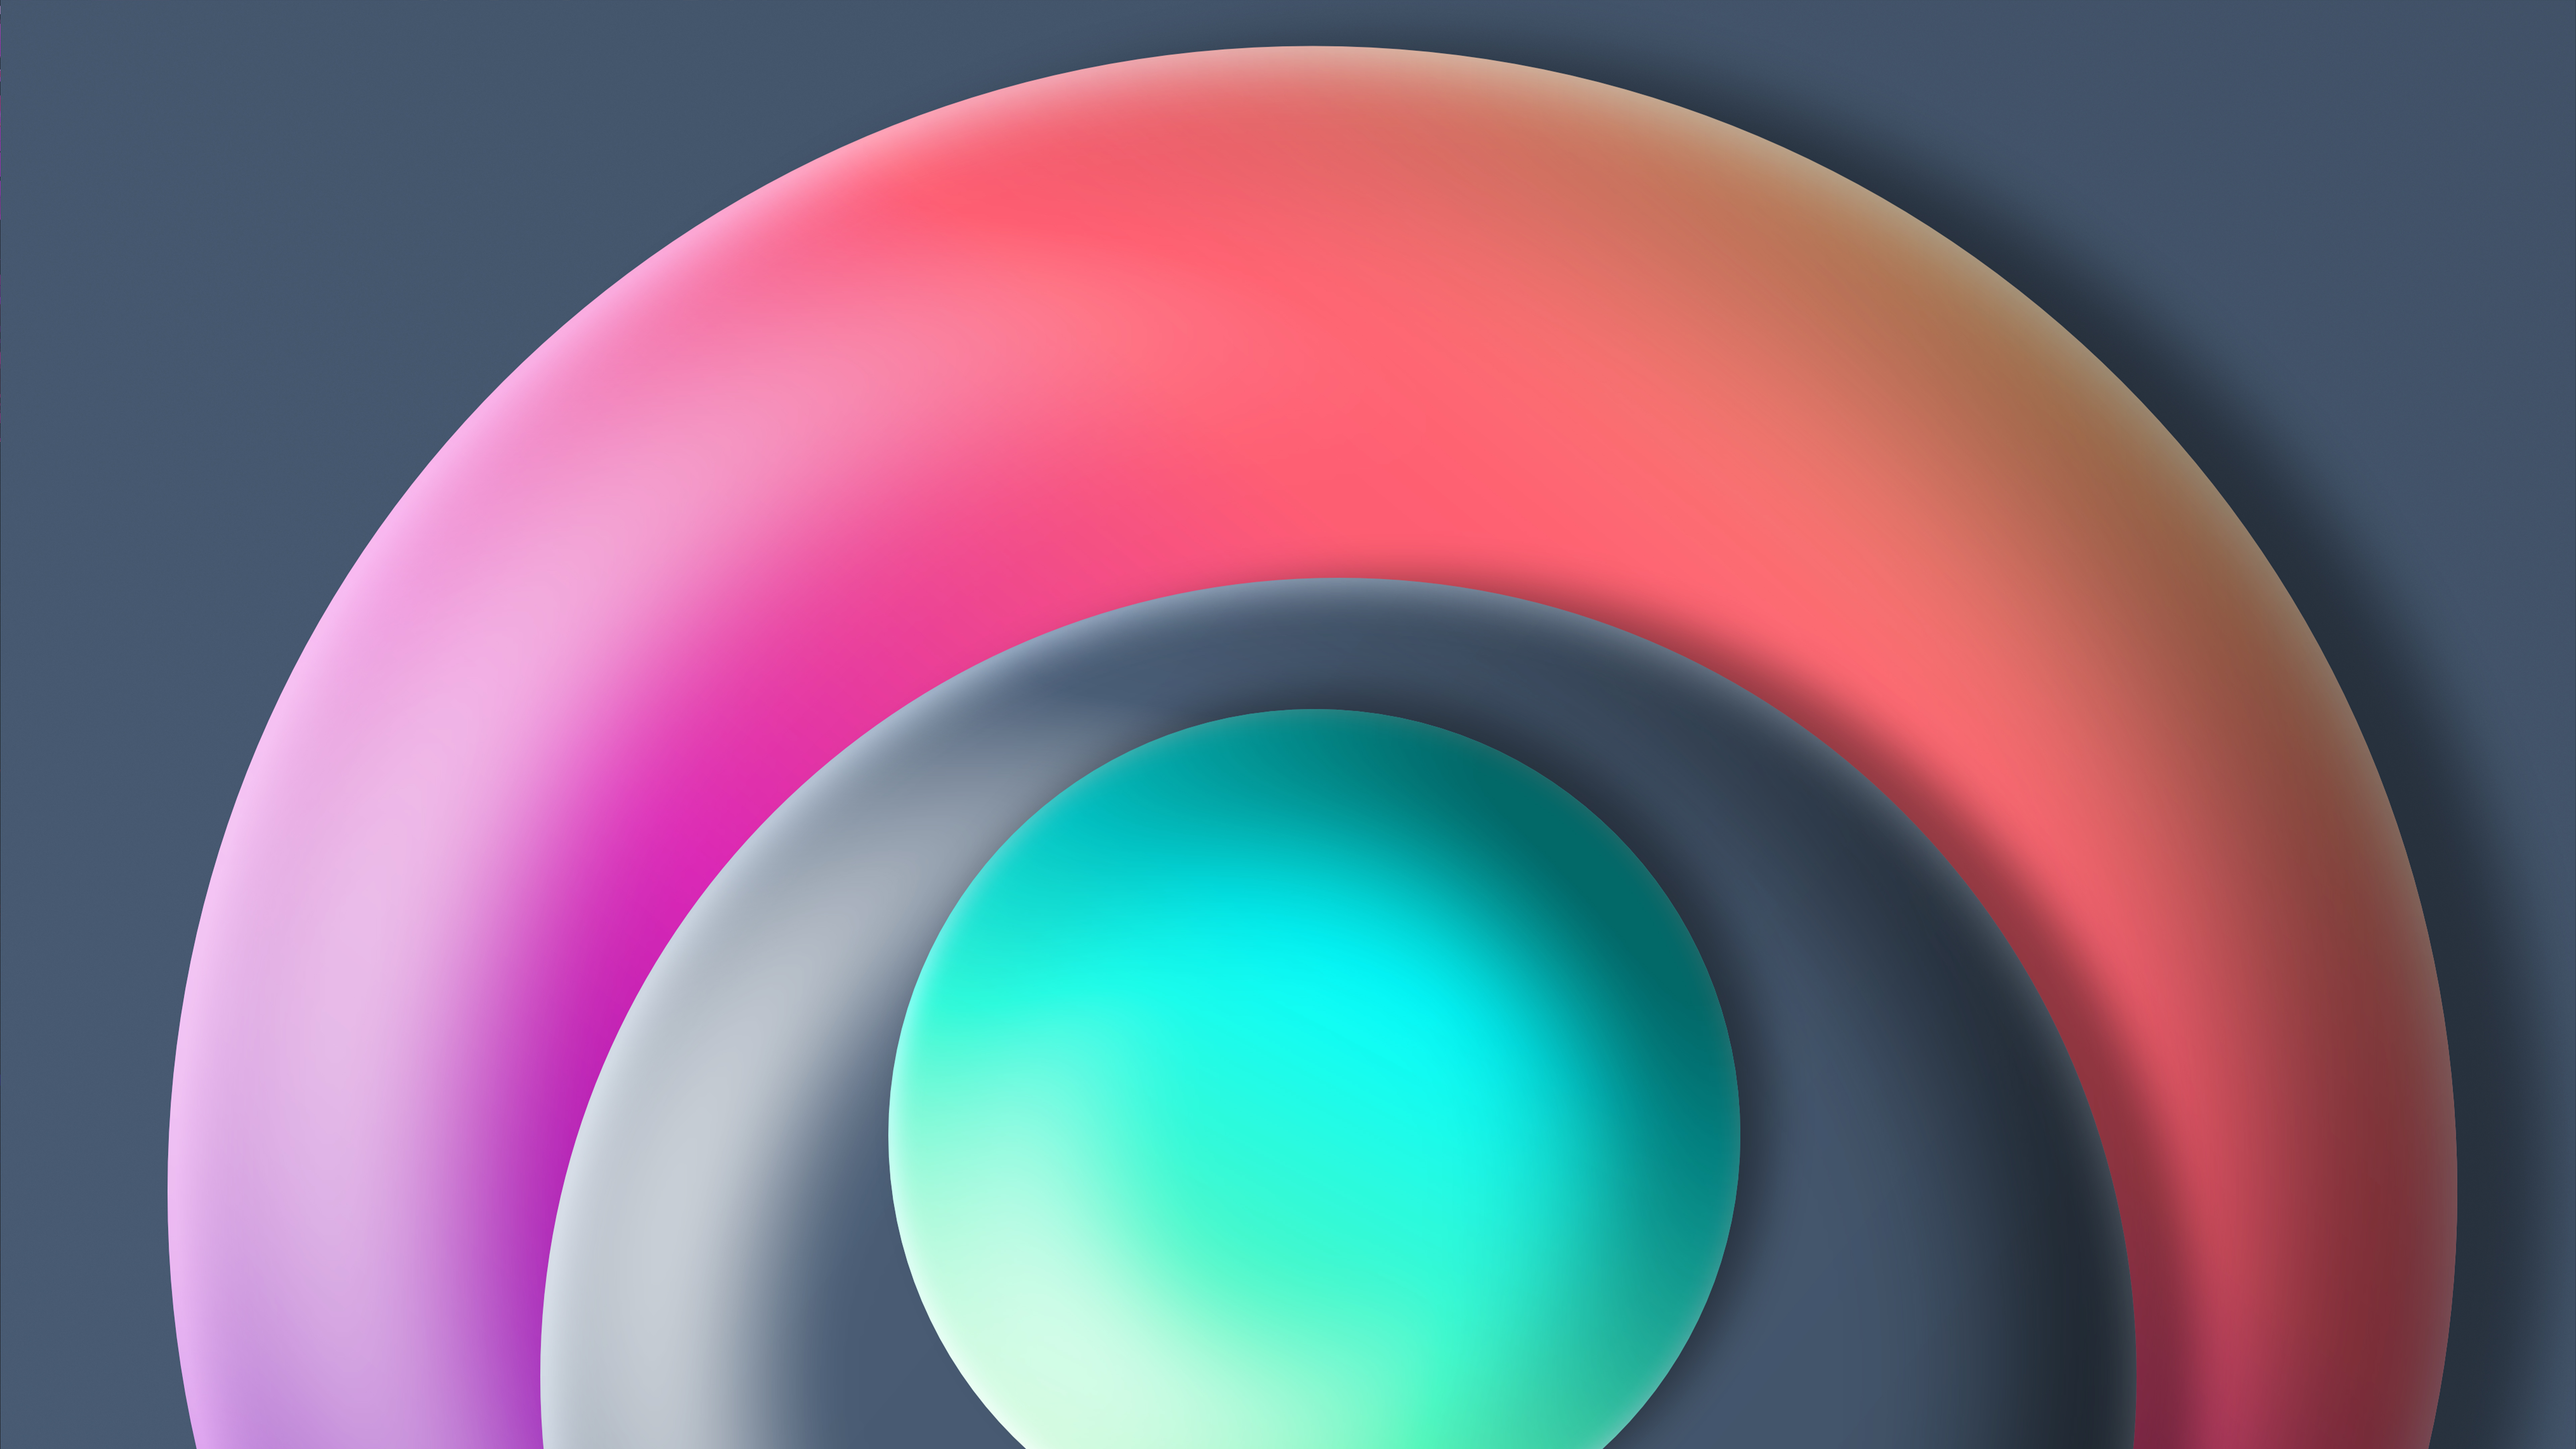 ball-abstract-3d-8k-tf.jpg